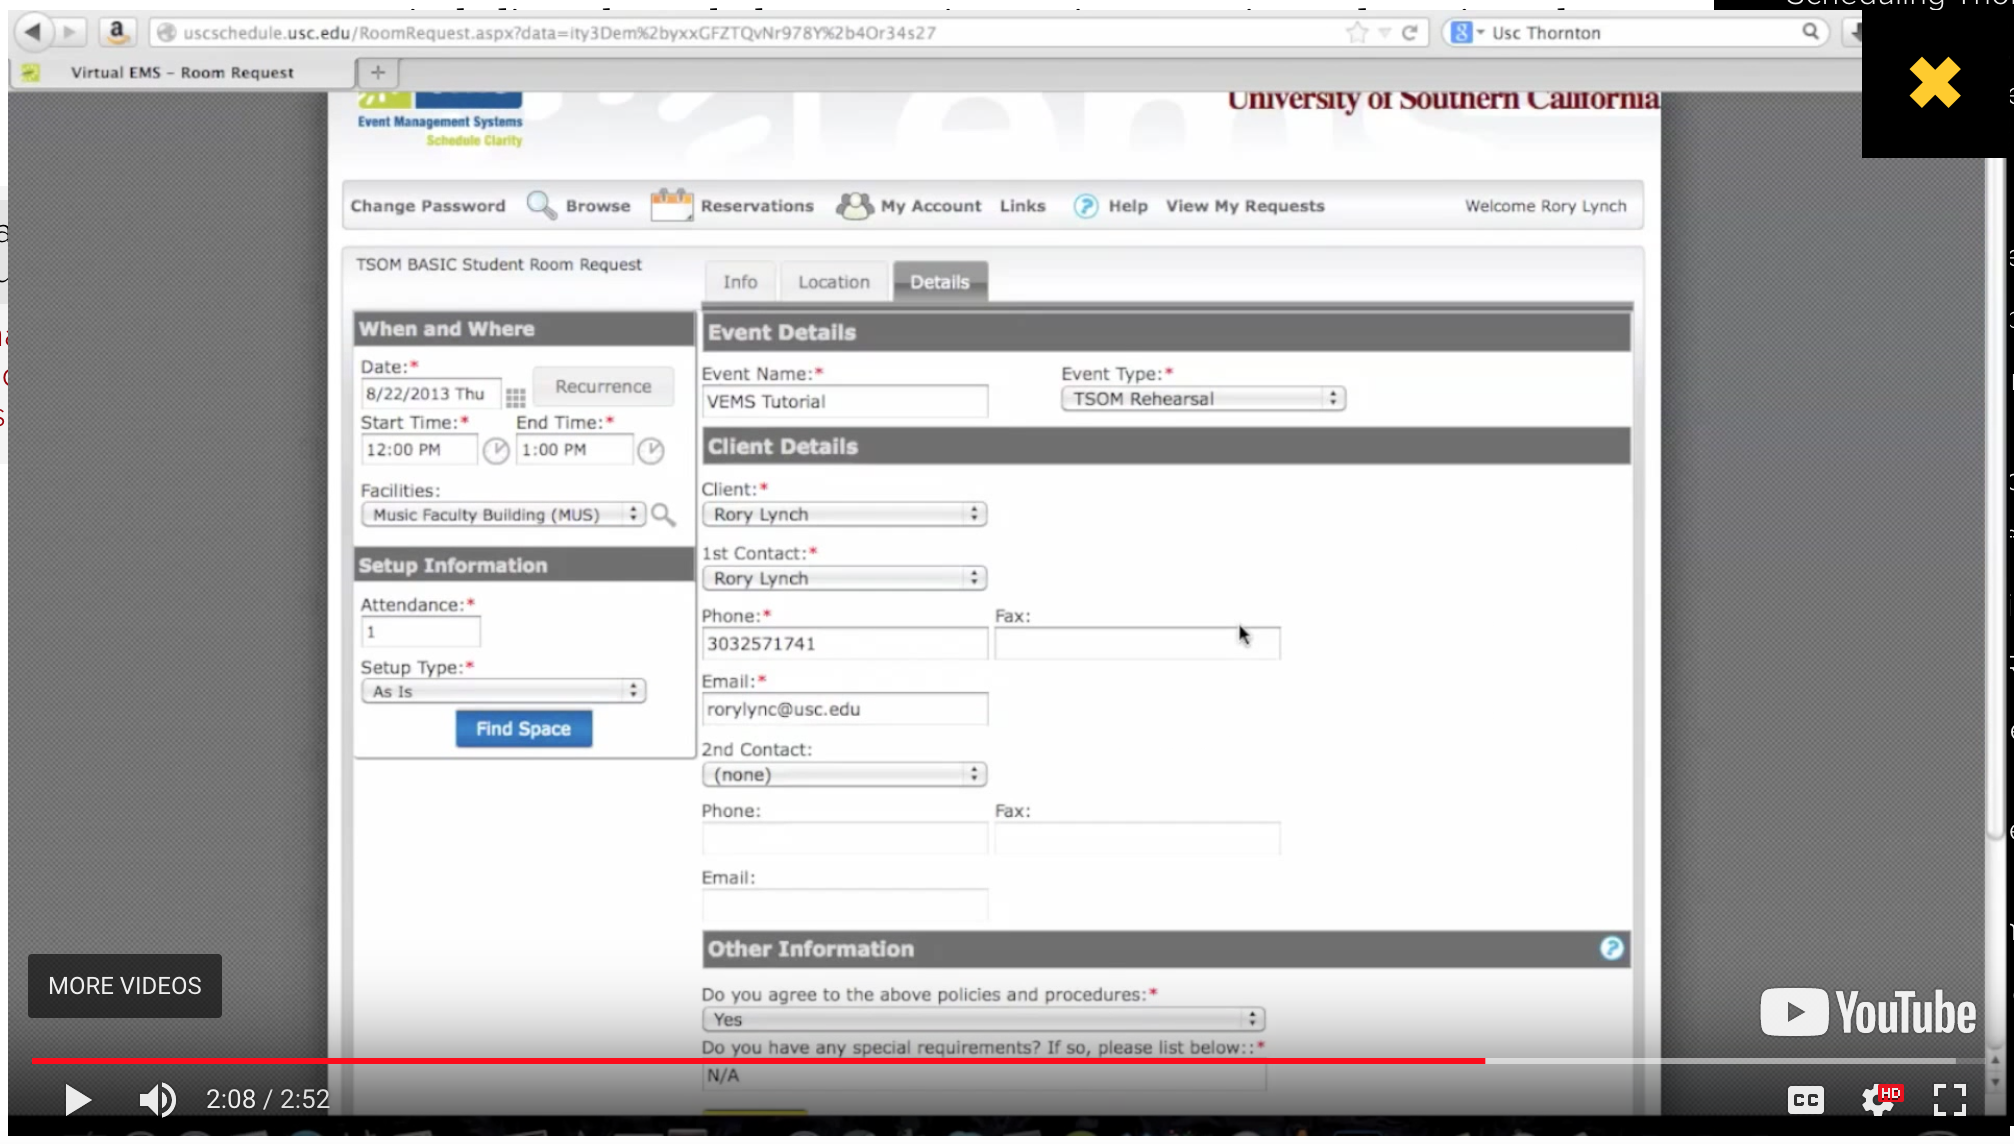 Limited and vague functionality: Only asks for name, time and number of attendance without much other information.